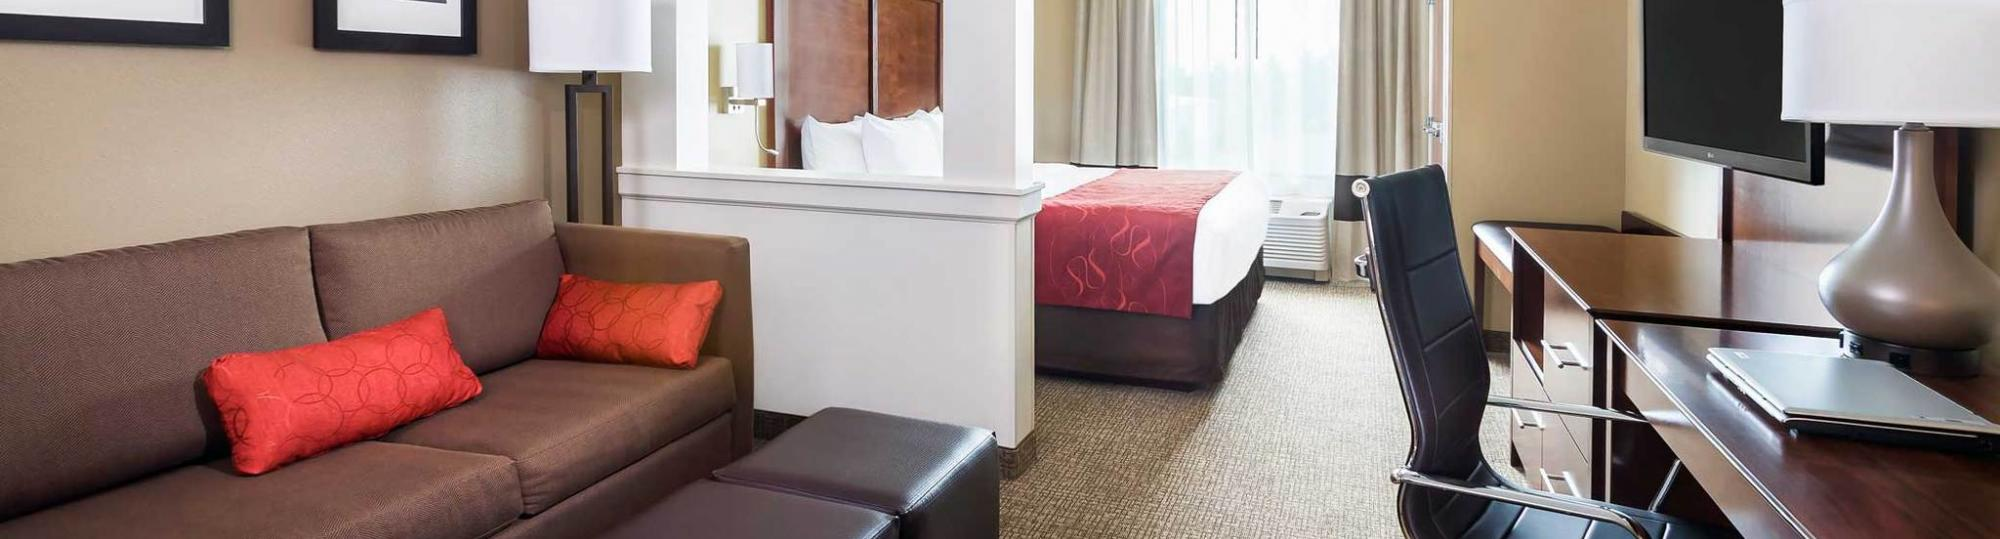 Comfort Suites Military Discount with Veterans Advantage